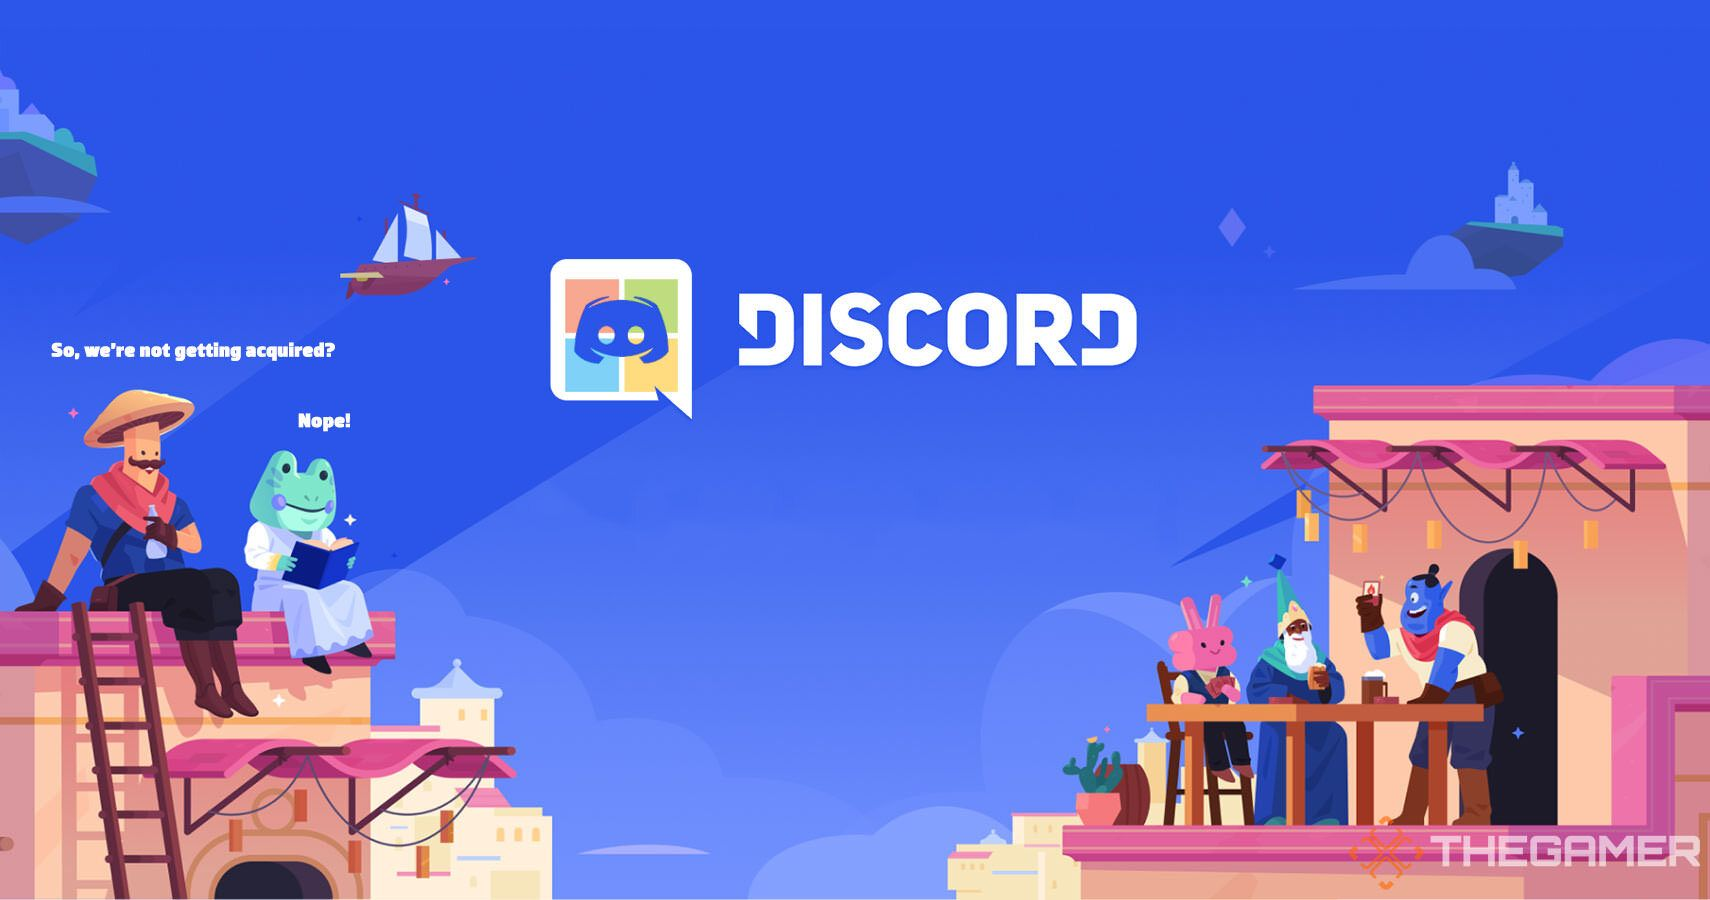 Report: Discord Will Not Be Acquired By Microsoft